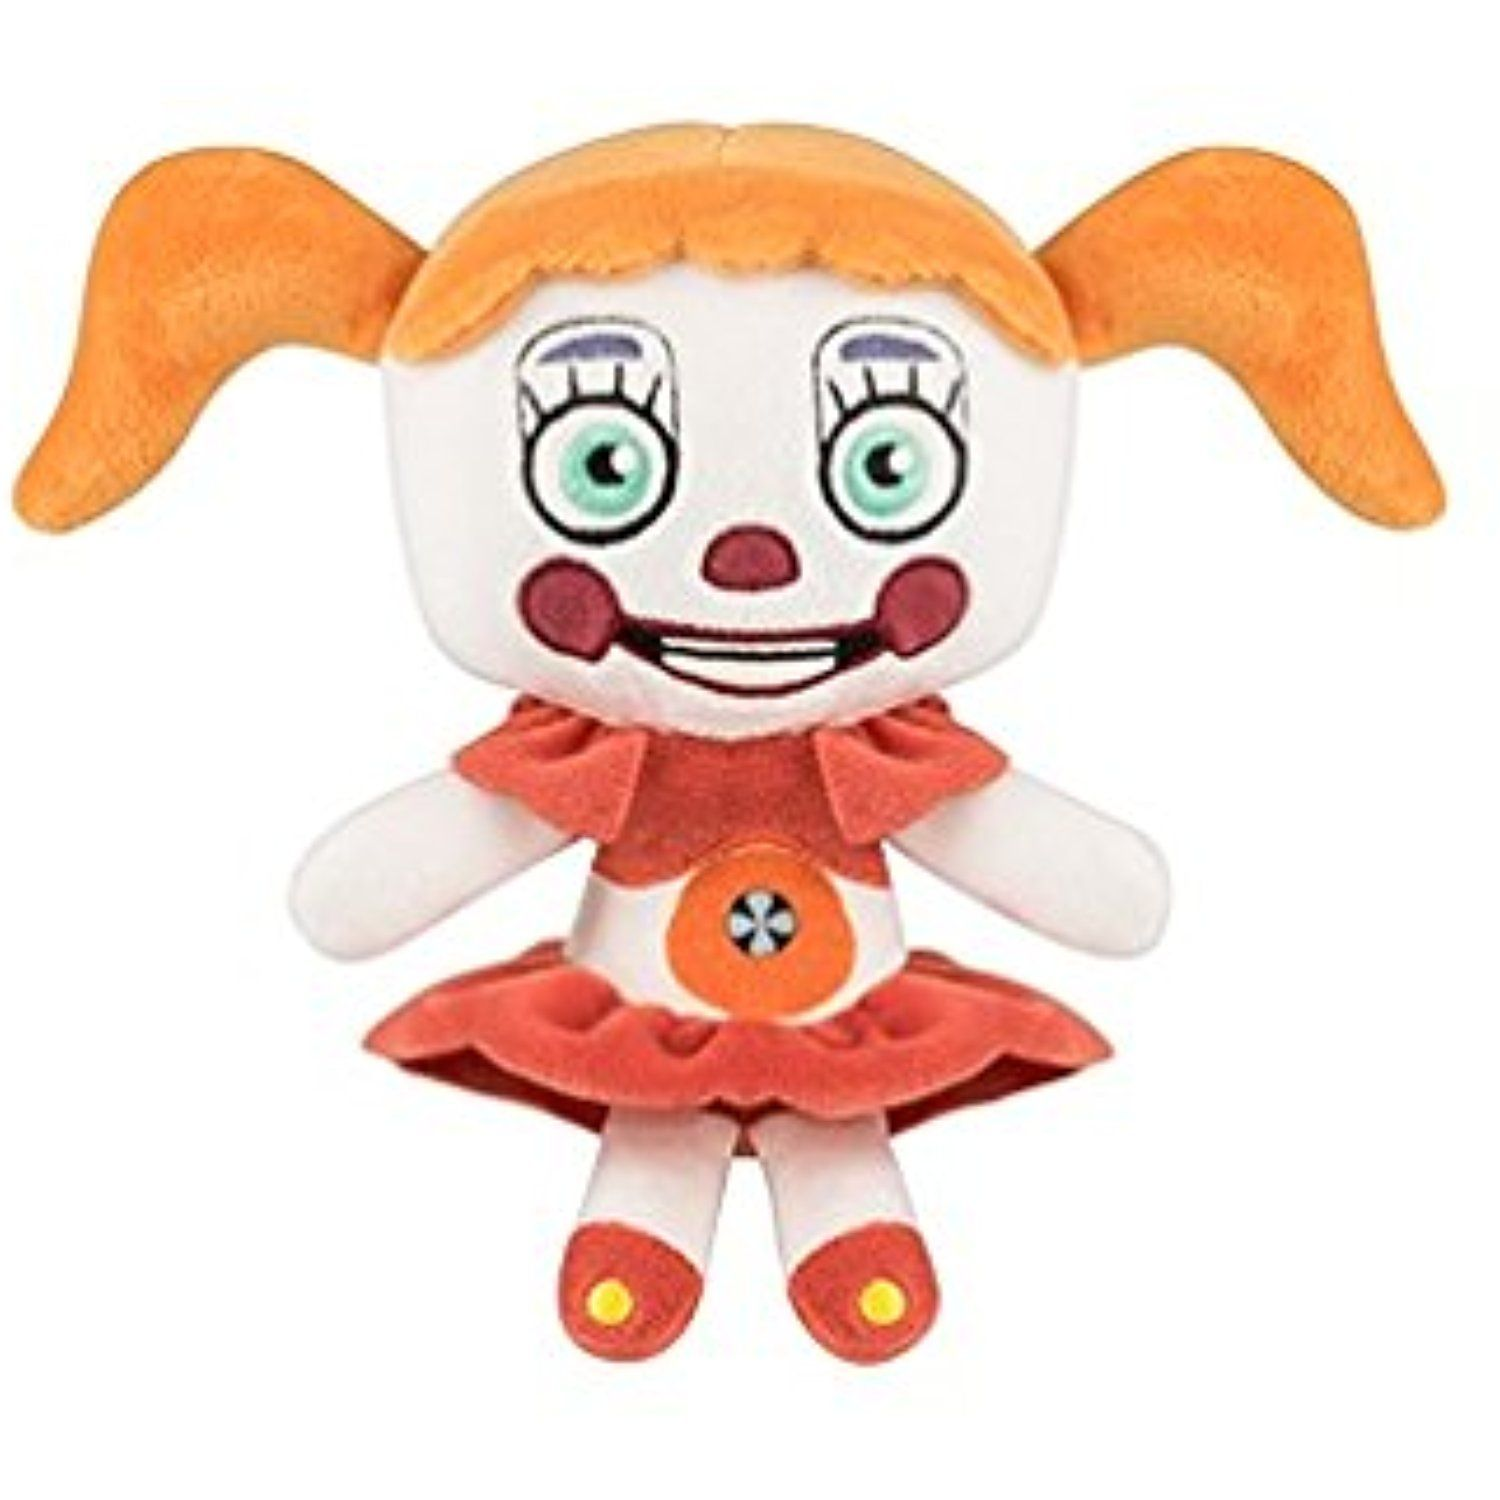 Funko Five Nights At Freddy's Sister LocationBaby